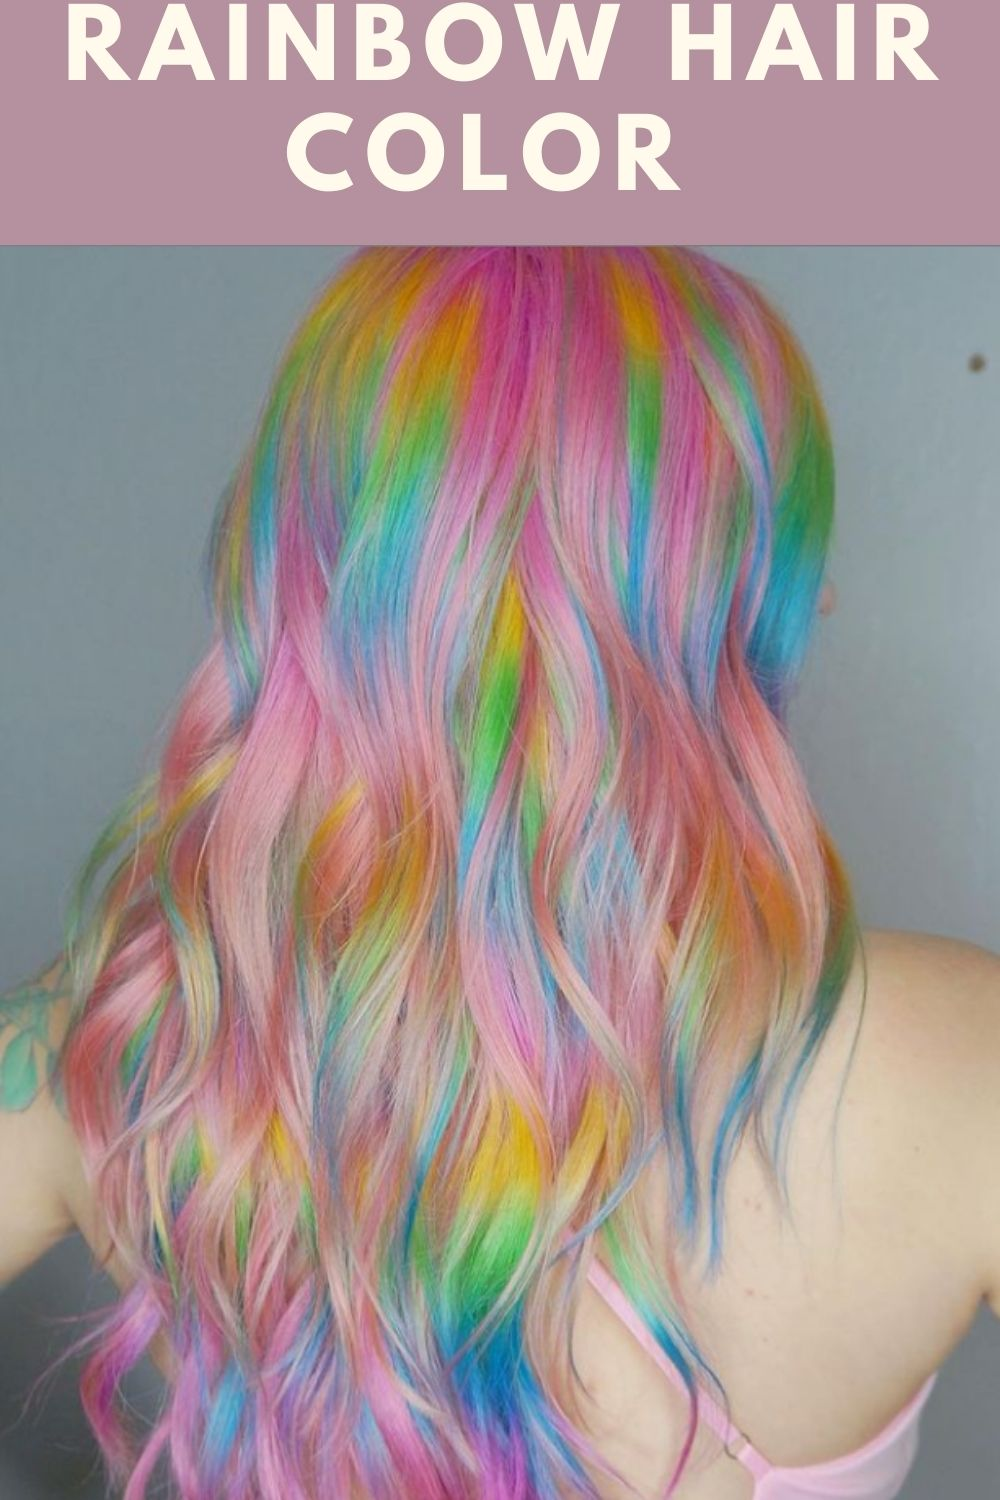 Colorful Rainbow hair color and hair dye ideas for Summer!